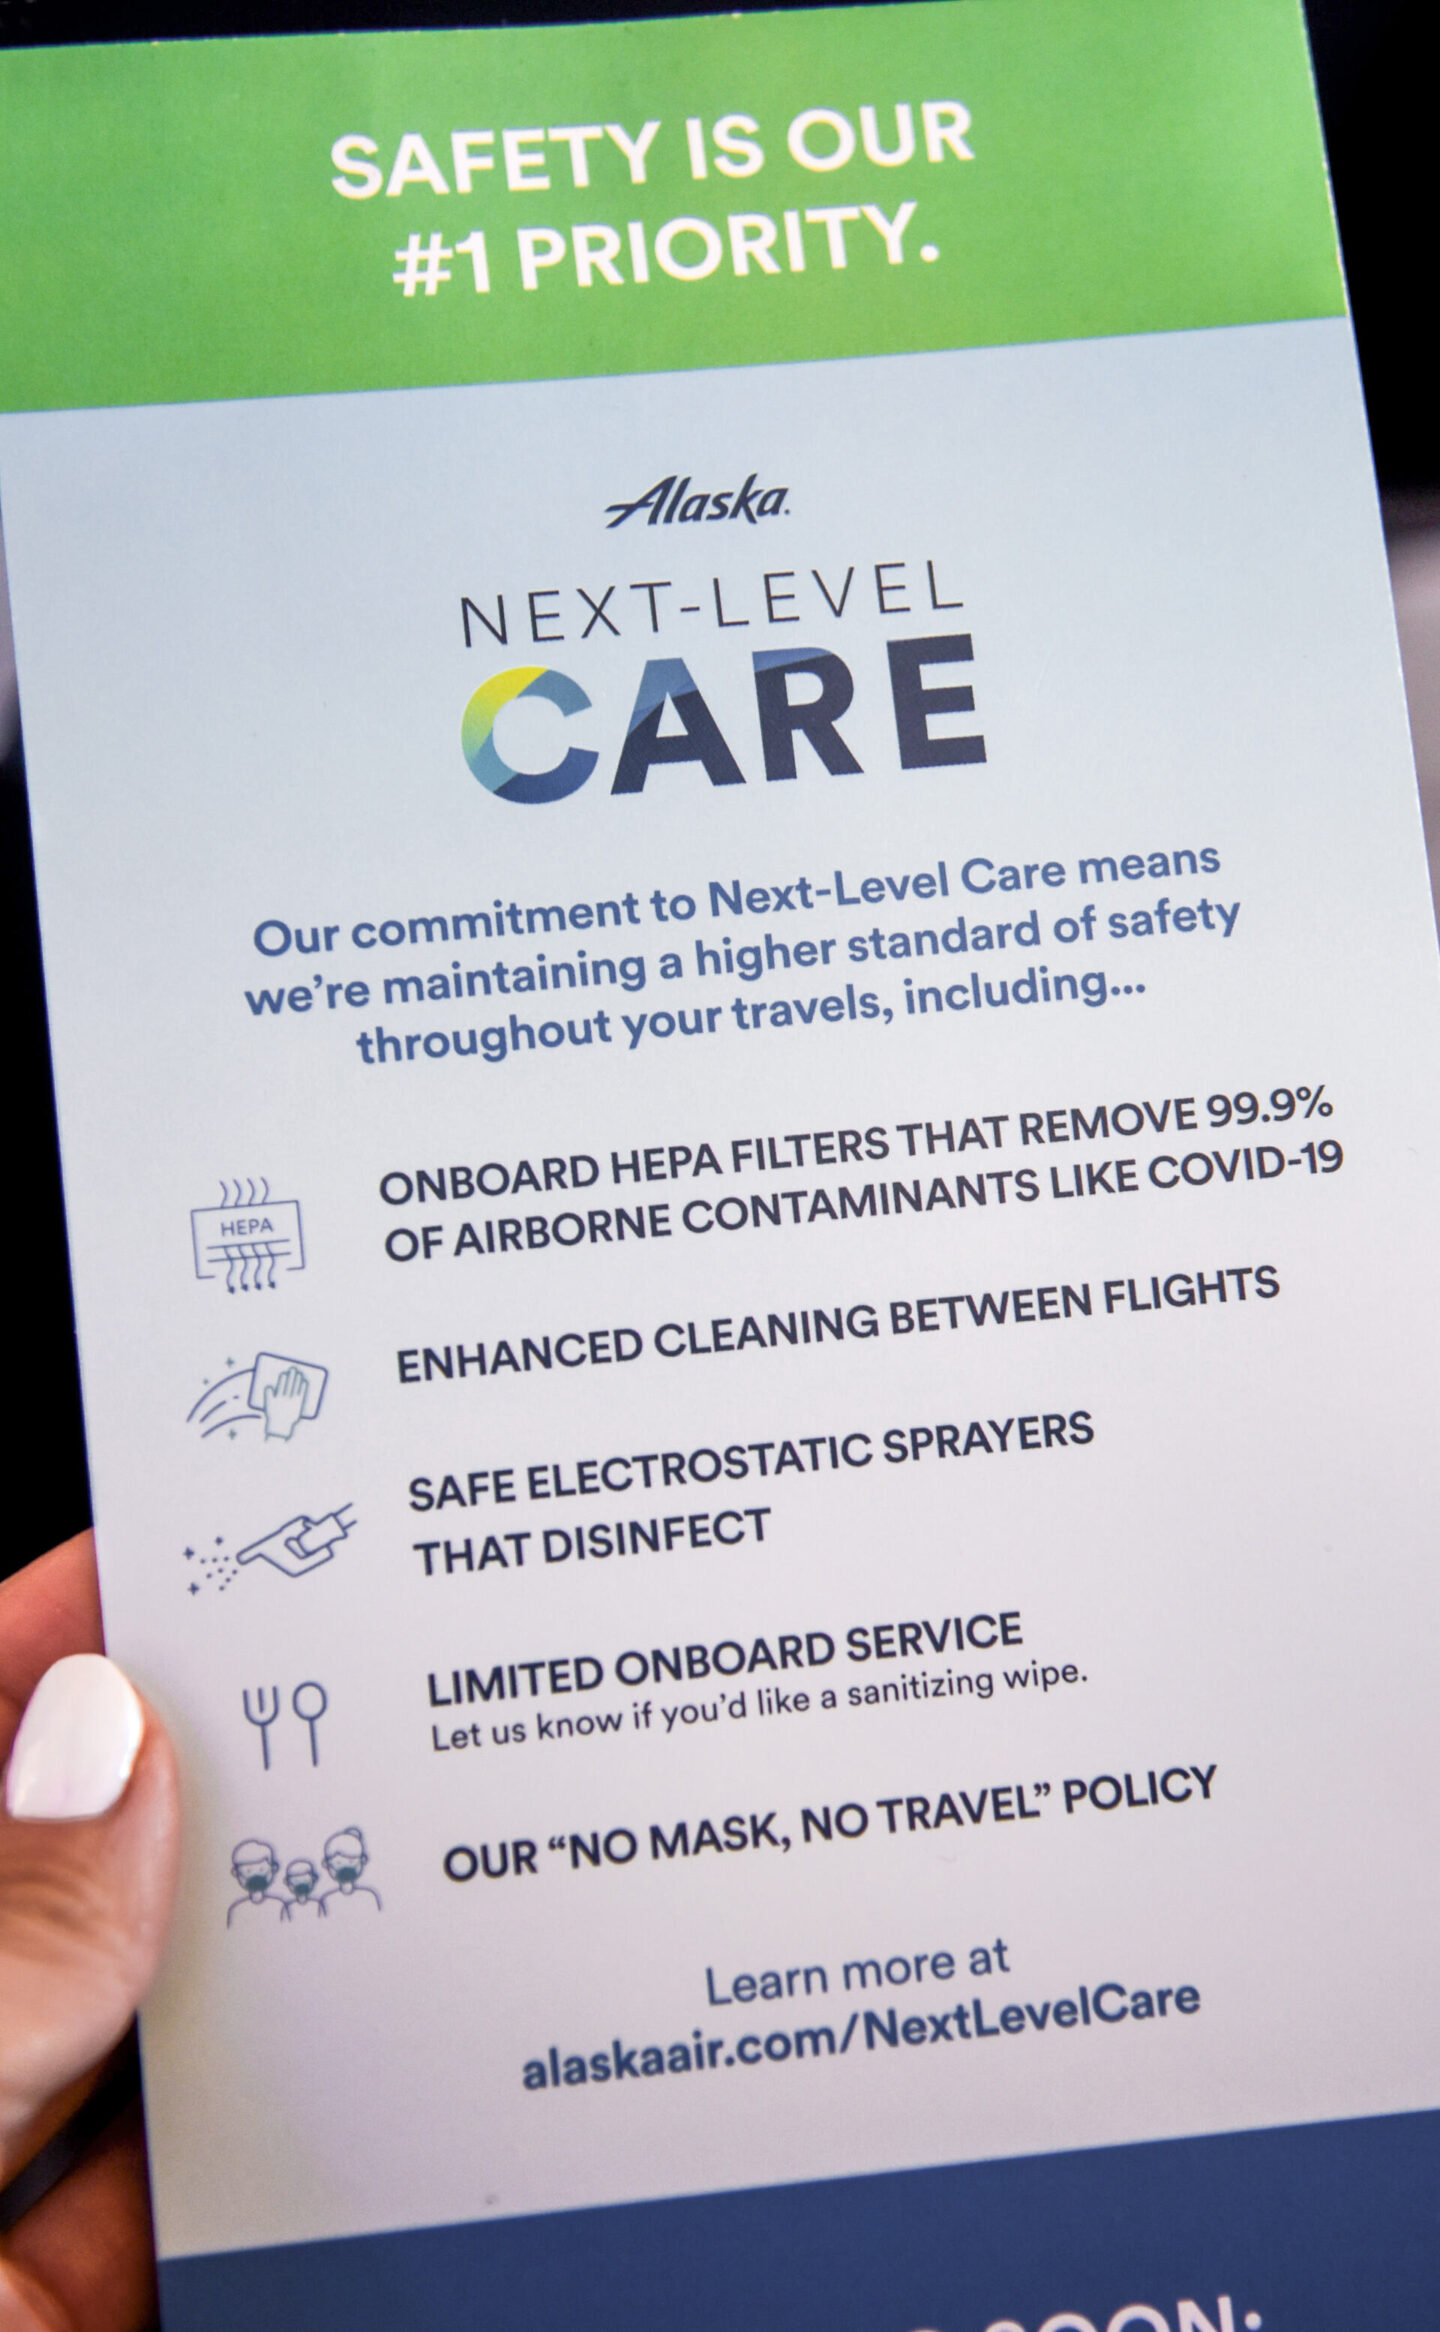 alaska air, covid precautions, next level care, flying during covid, first class